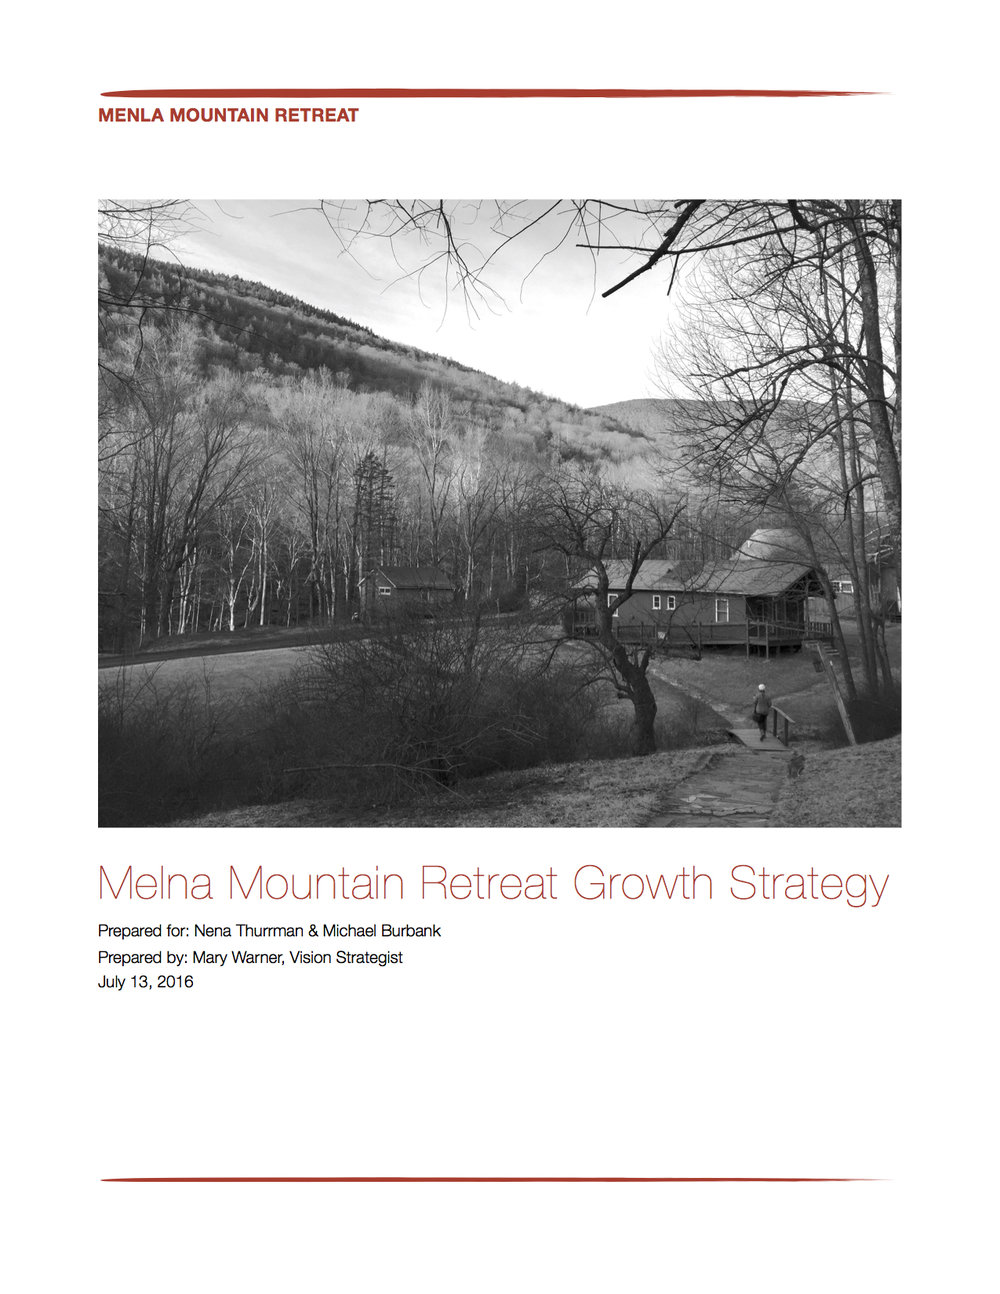 Menla Mountain Retreat // internal documents  Developed market and brand strategy to strengthen outreach of retreat center and U.S. outreach of the Dalai Lama for Tibetan Buddhism.   Plans included review of all brand assets across platforms to ensure the clarity and consistency of the brand, as well as social media analysis.